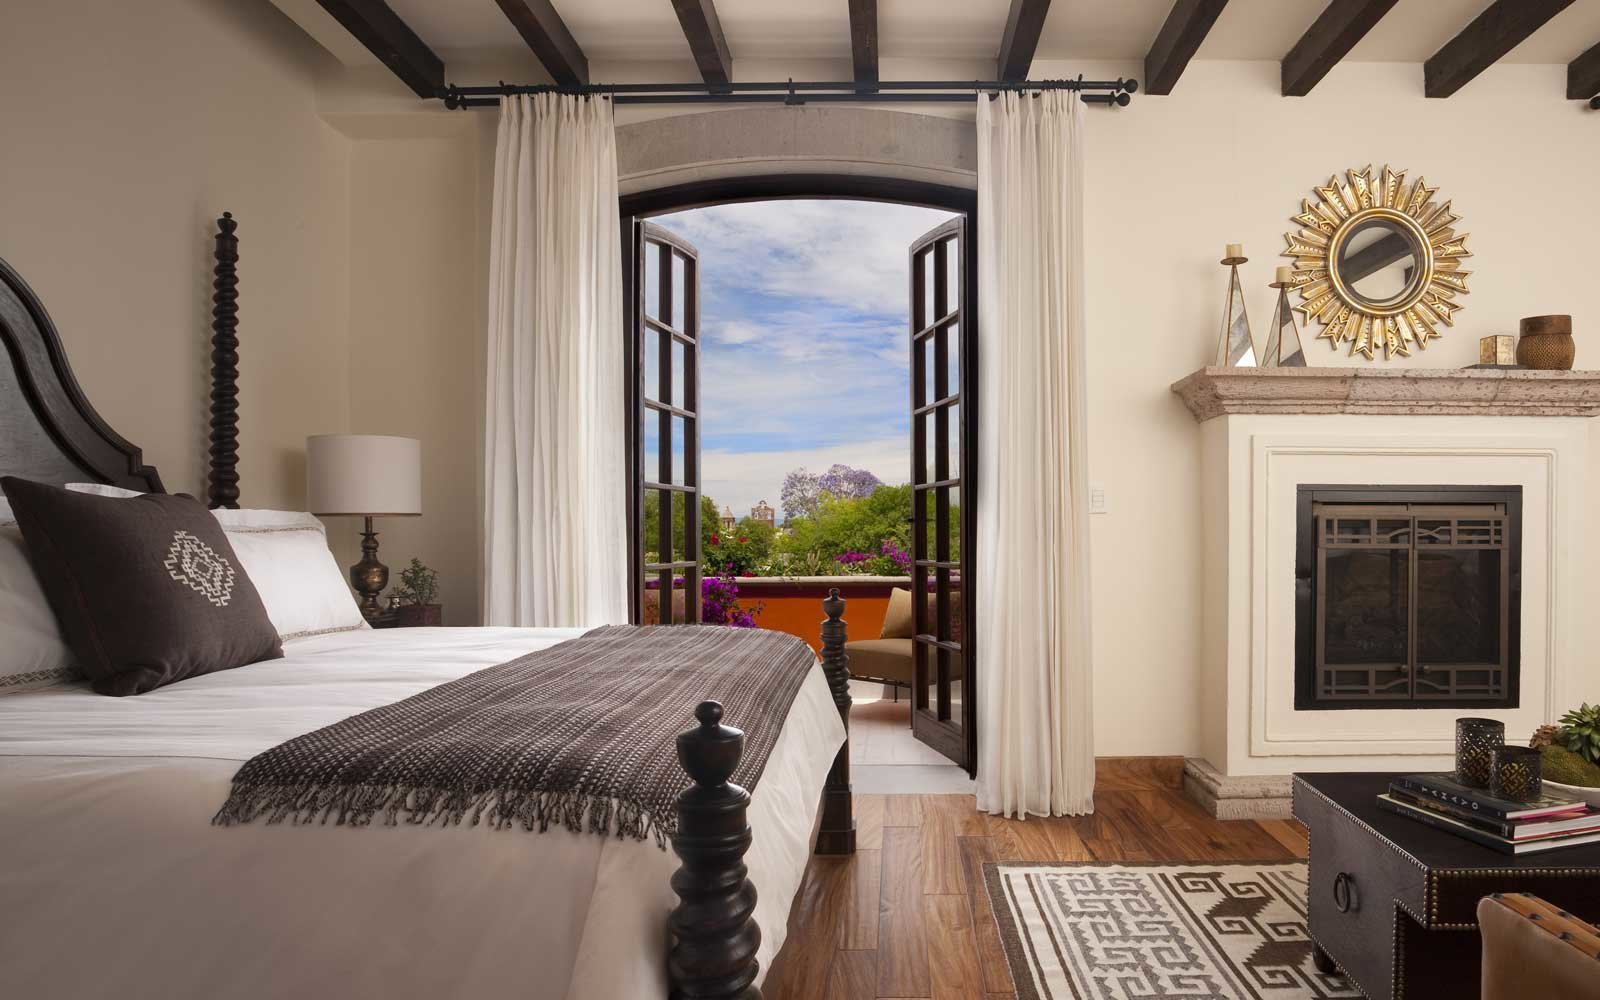 Room at the Rosewood San Miguel de Allende